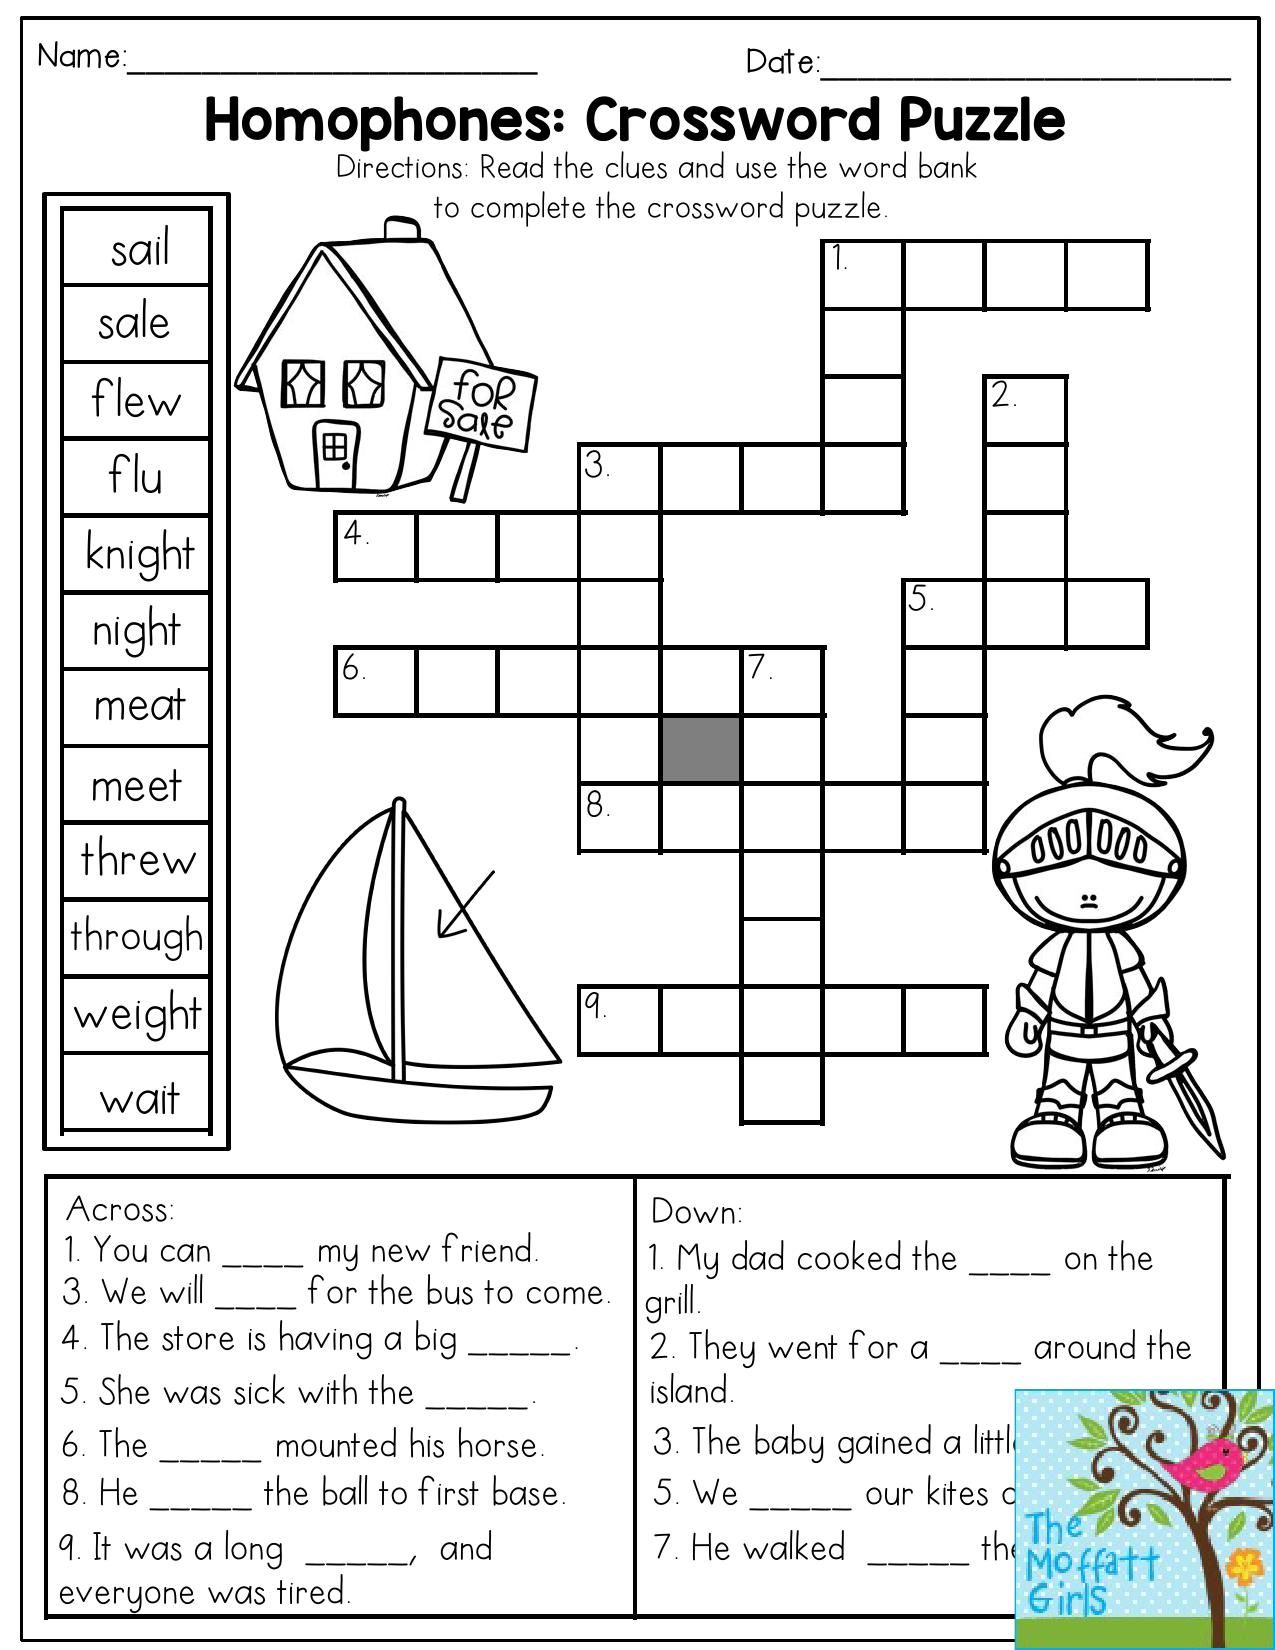 image relating to 3rd Grade Crossword Puzzles Printable titled Spelling Quality 23 Interactive Printable Crossword Puzzle